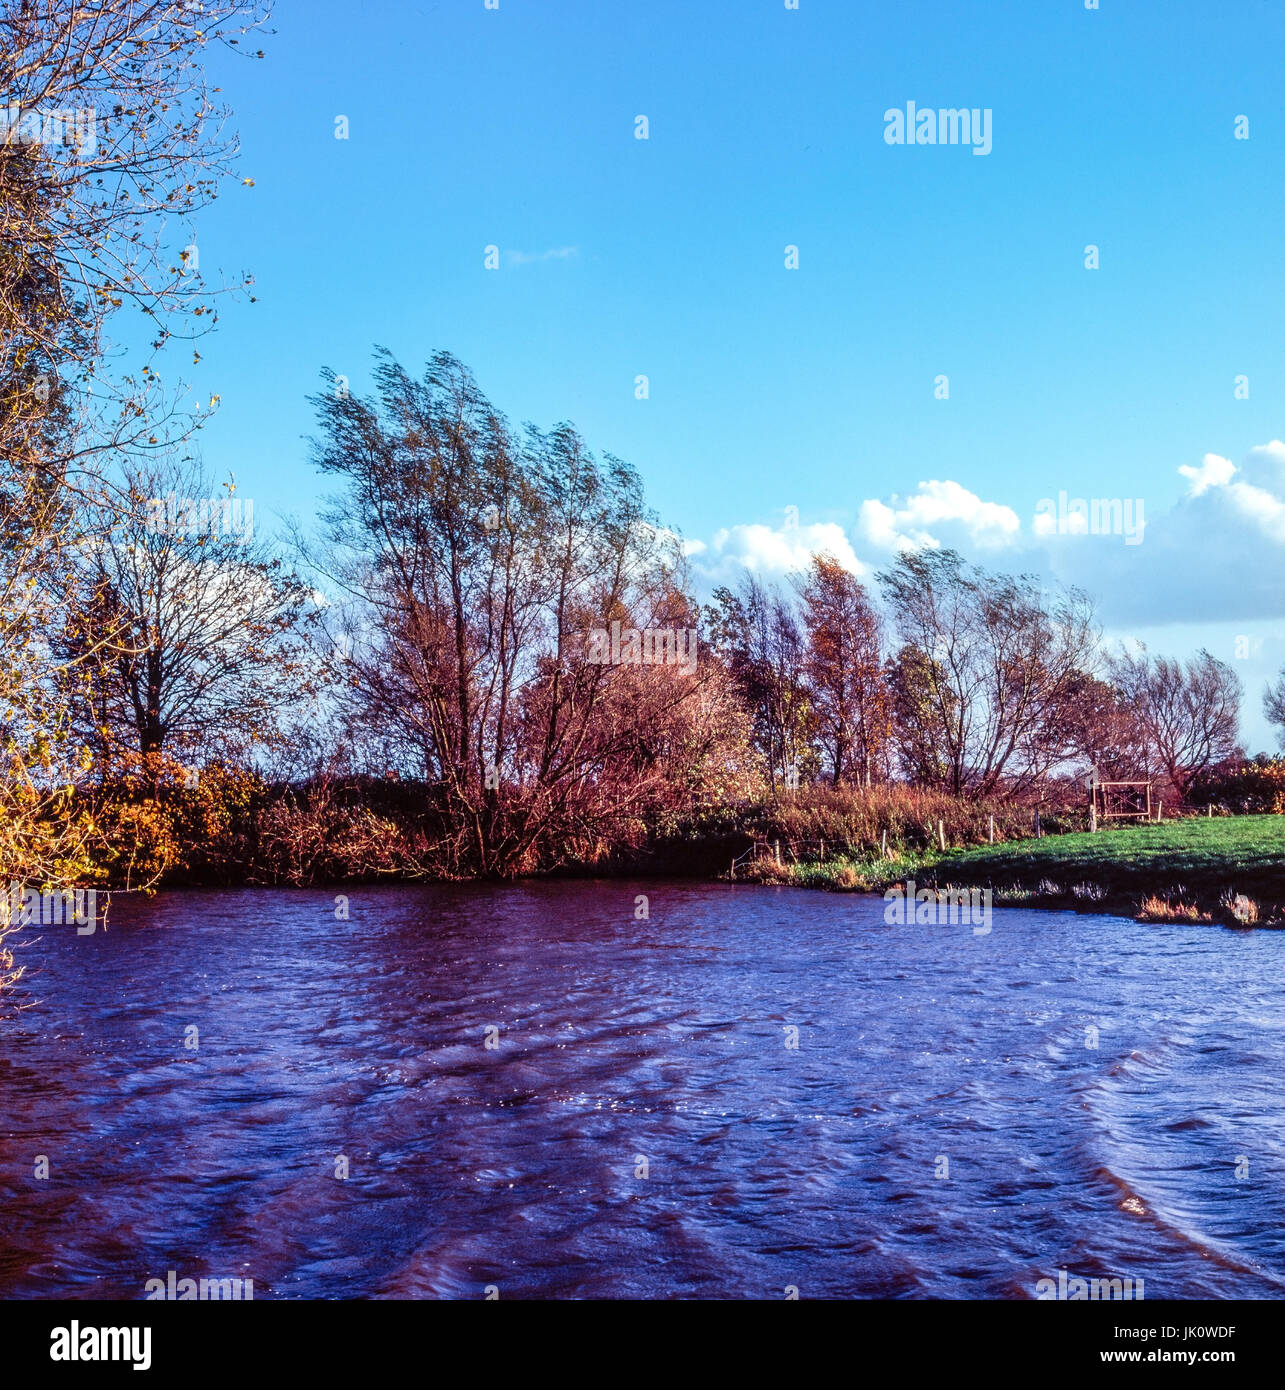 behind the dyke of situated ponds, a legacy of old storm floods, hinter dem deich gelegener weiher, eine hinterlassenschaft - Stock Image